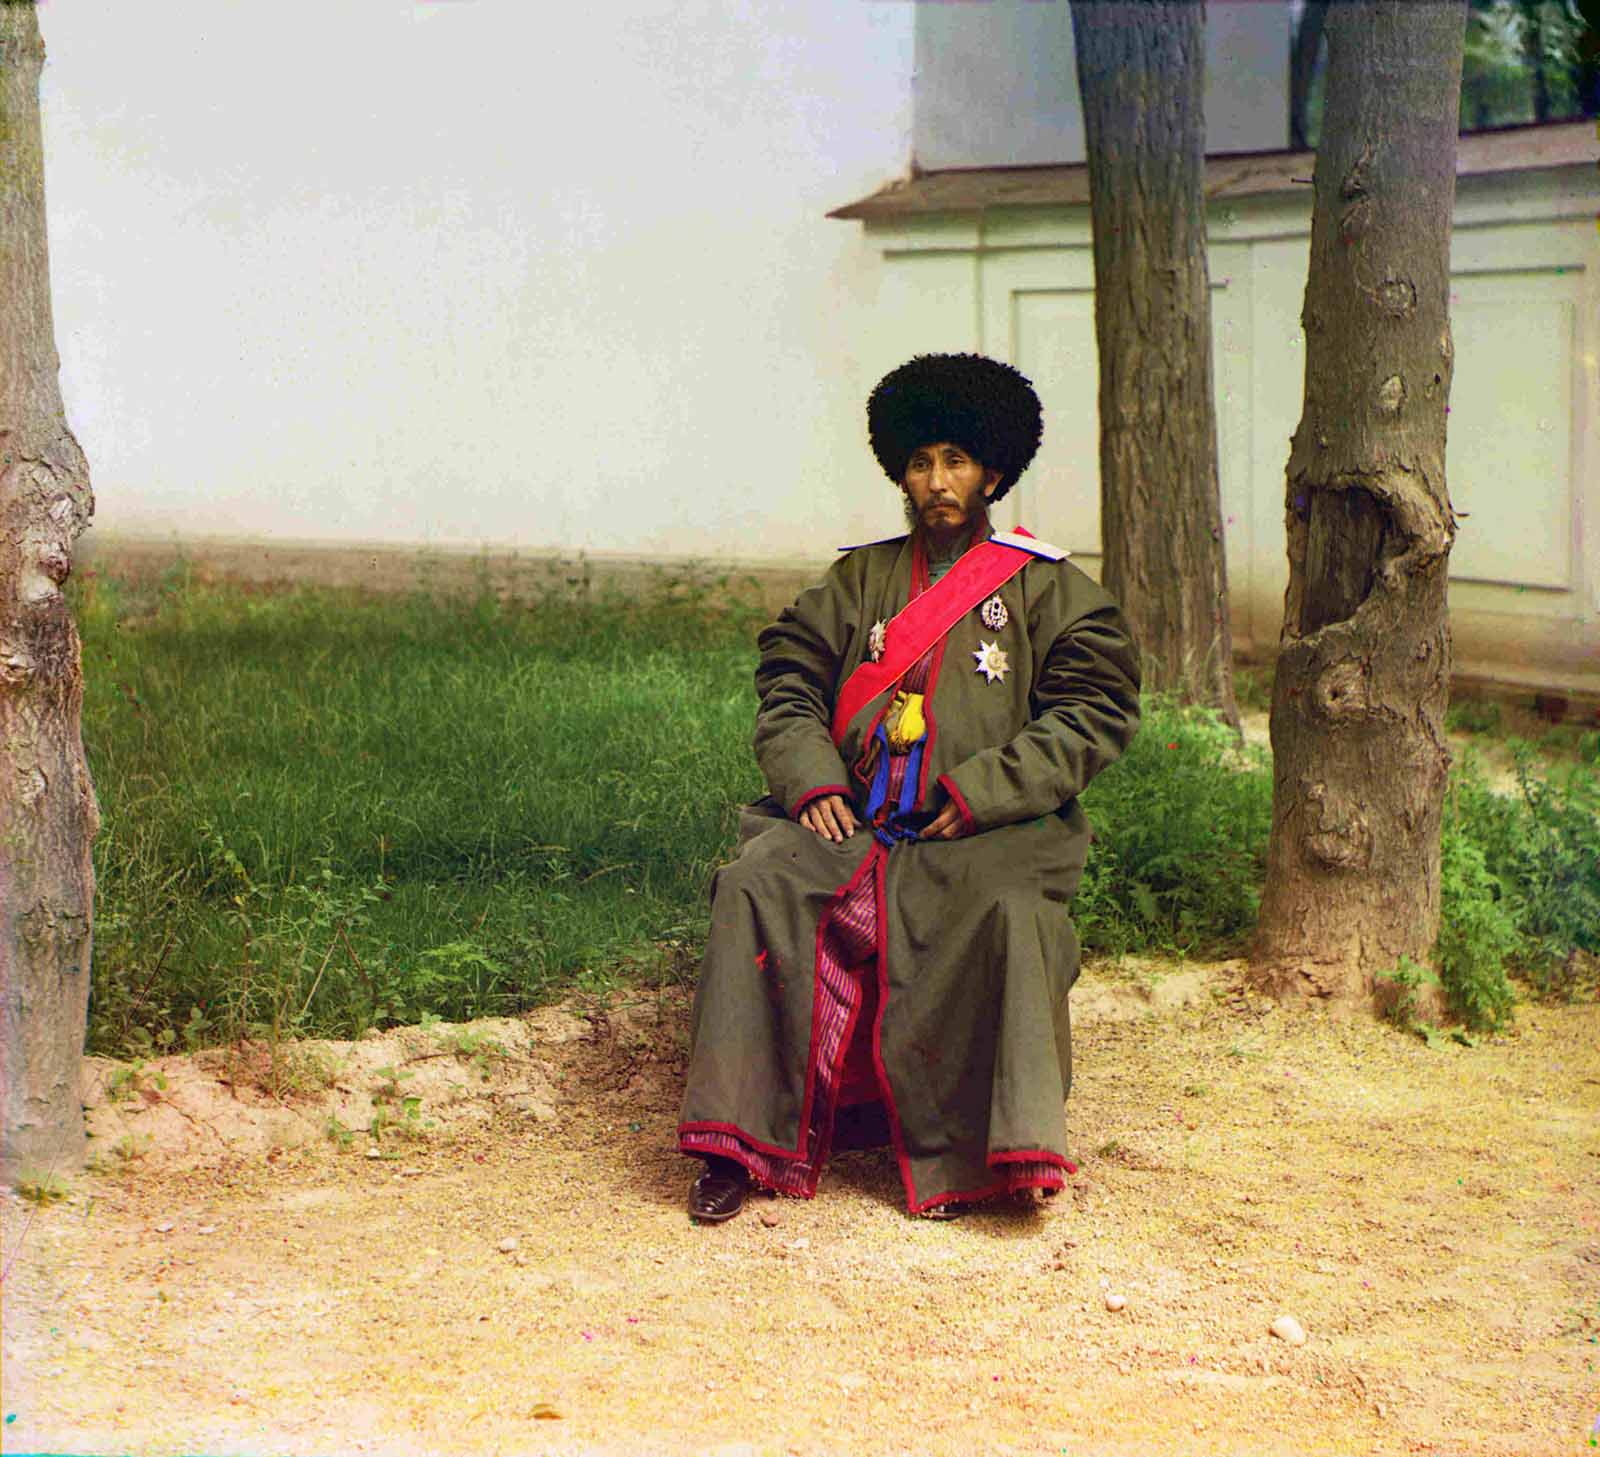 Isfandiyar Jurji Bahadur, Khan of the Russian protectorate of Khorezm (Khiva, now a part of modern Uzbekistan), full-length portrait, seated outdoors, ca. 1910.